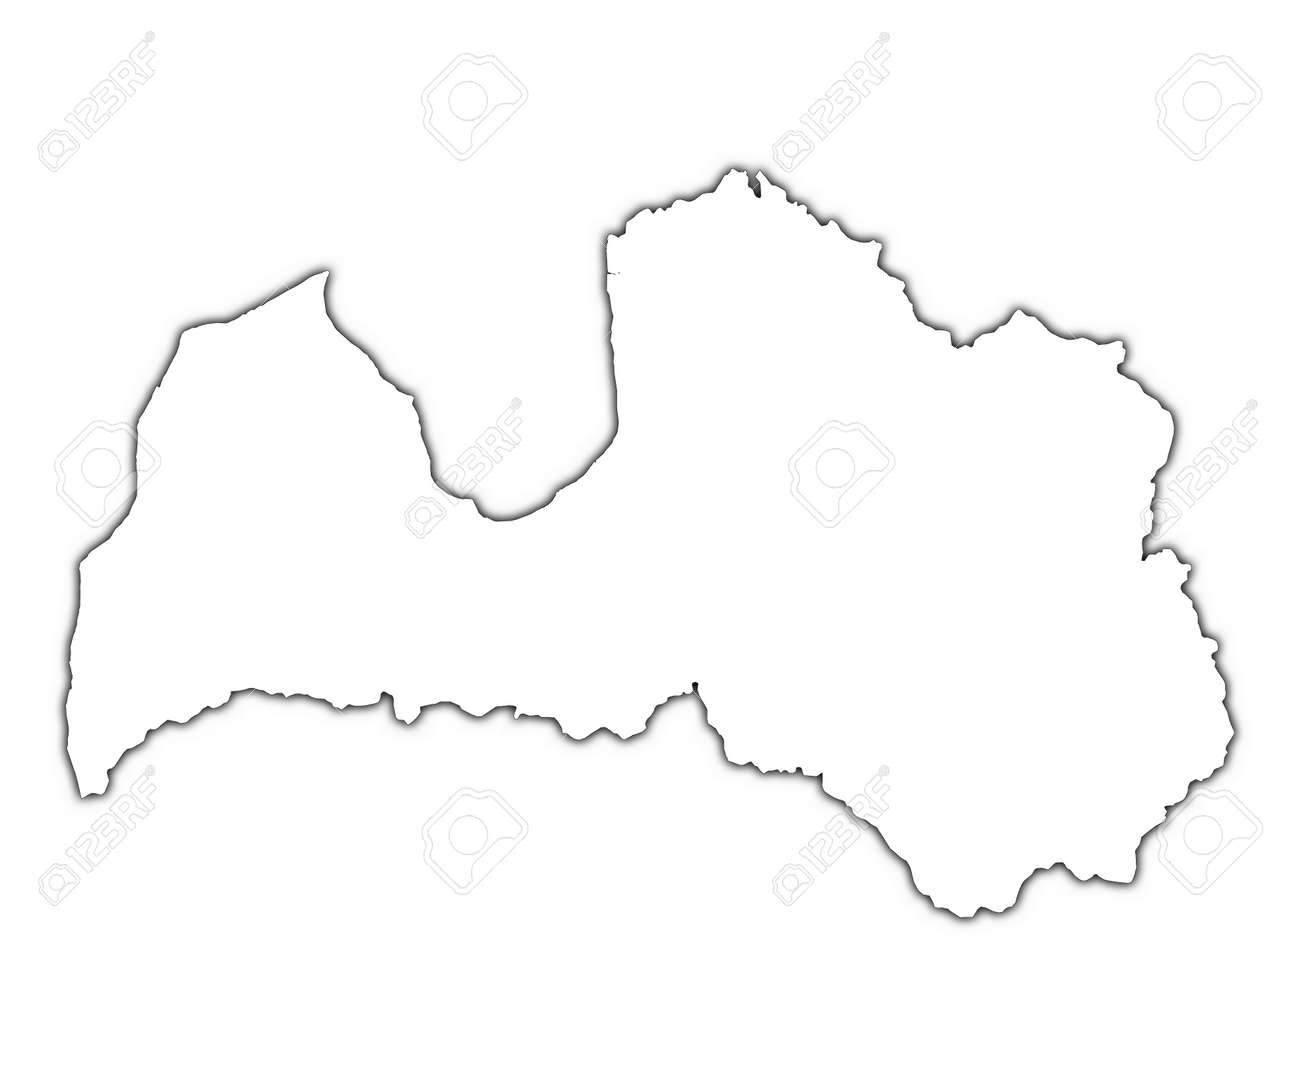 Latvia Outline Map With Shadow Detailed Mercator Projection - Latvia map outline